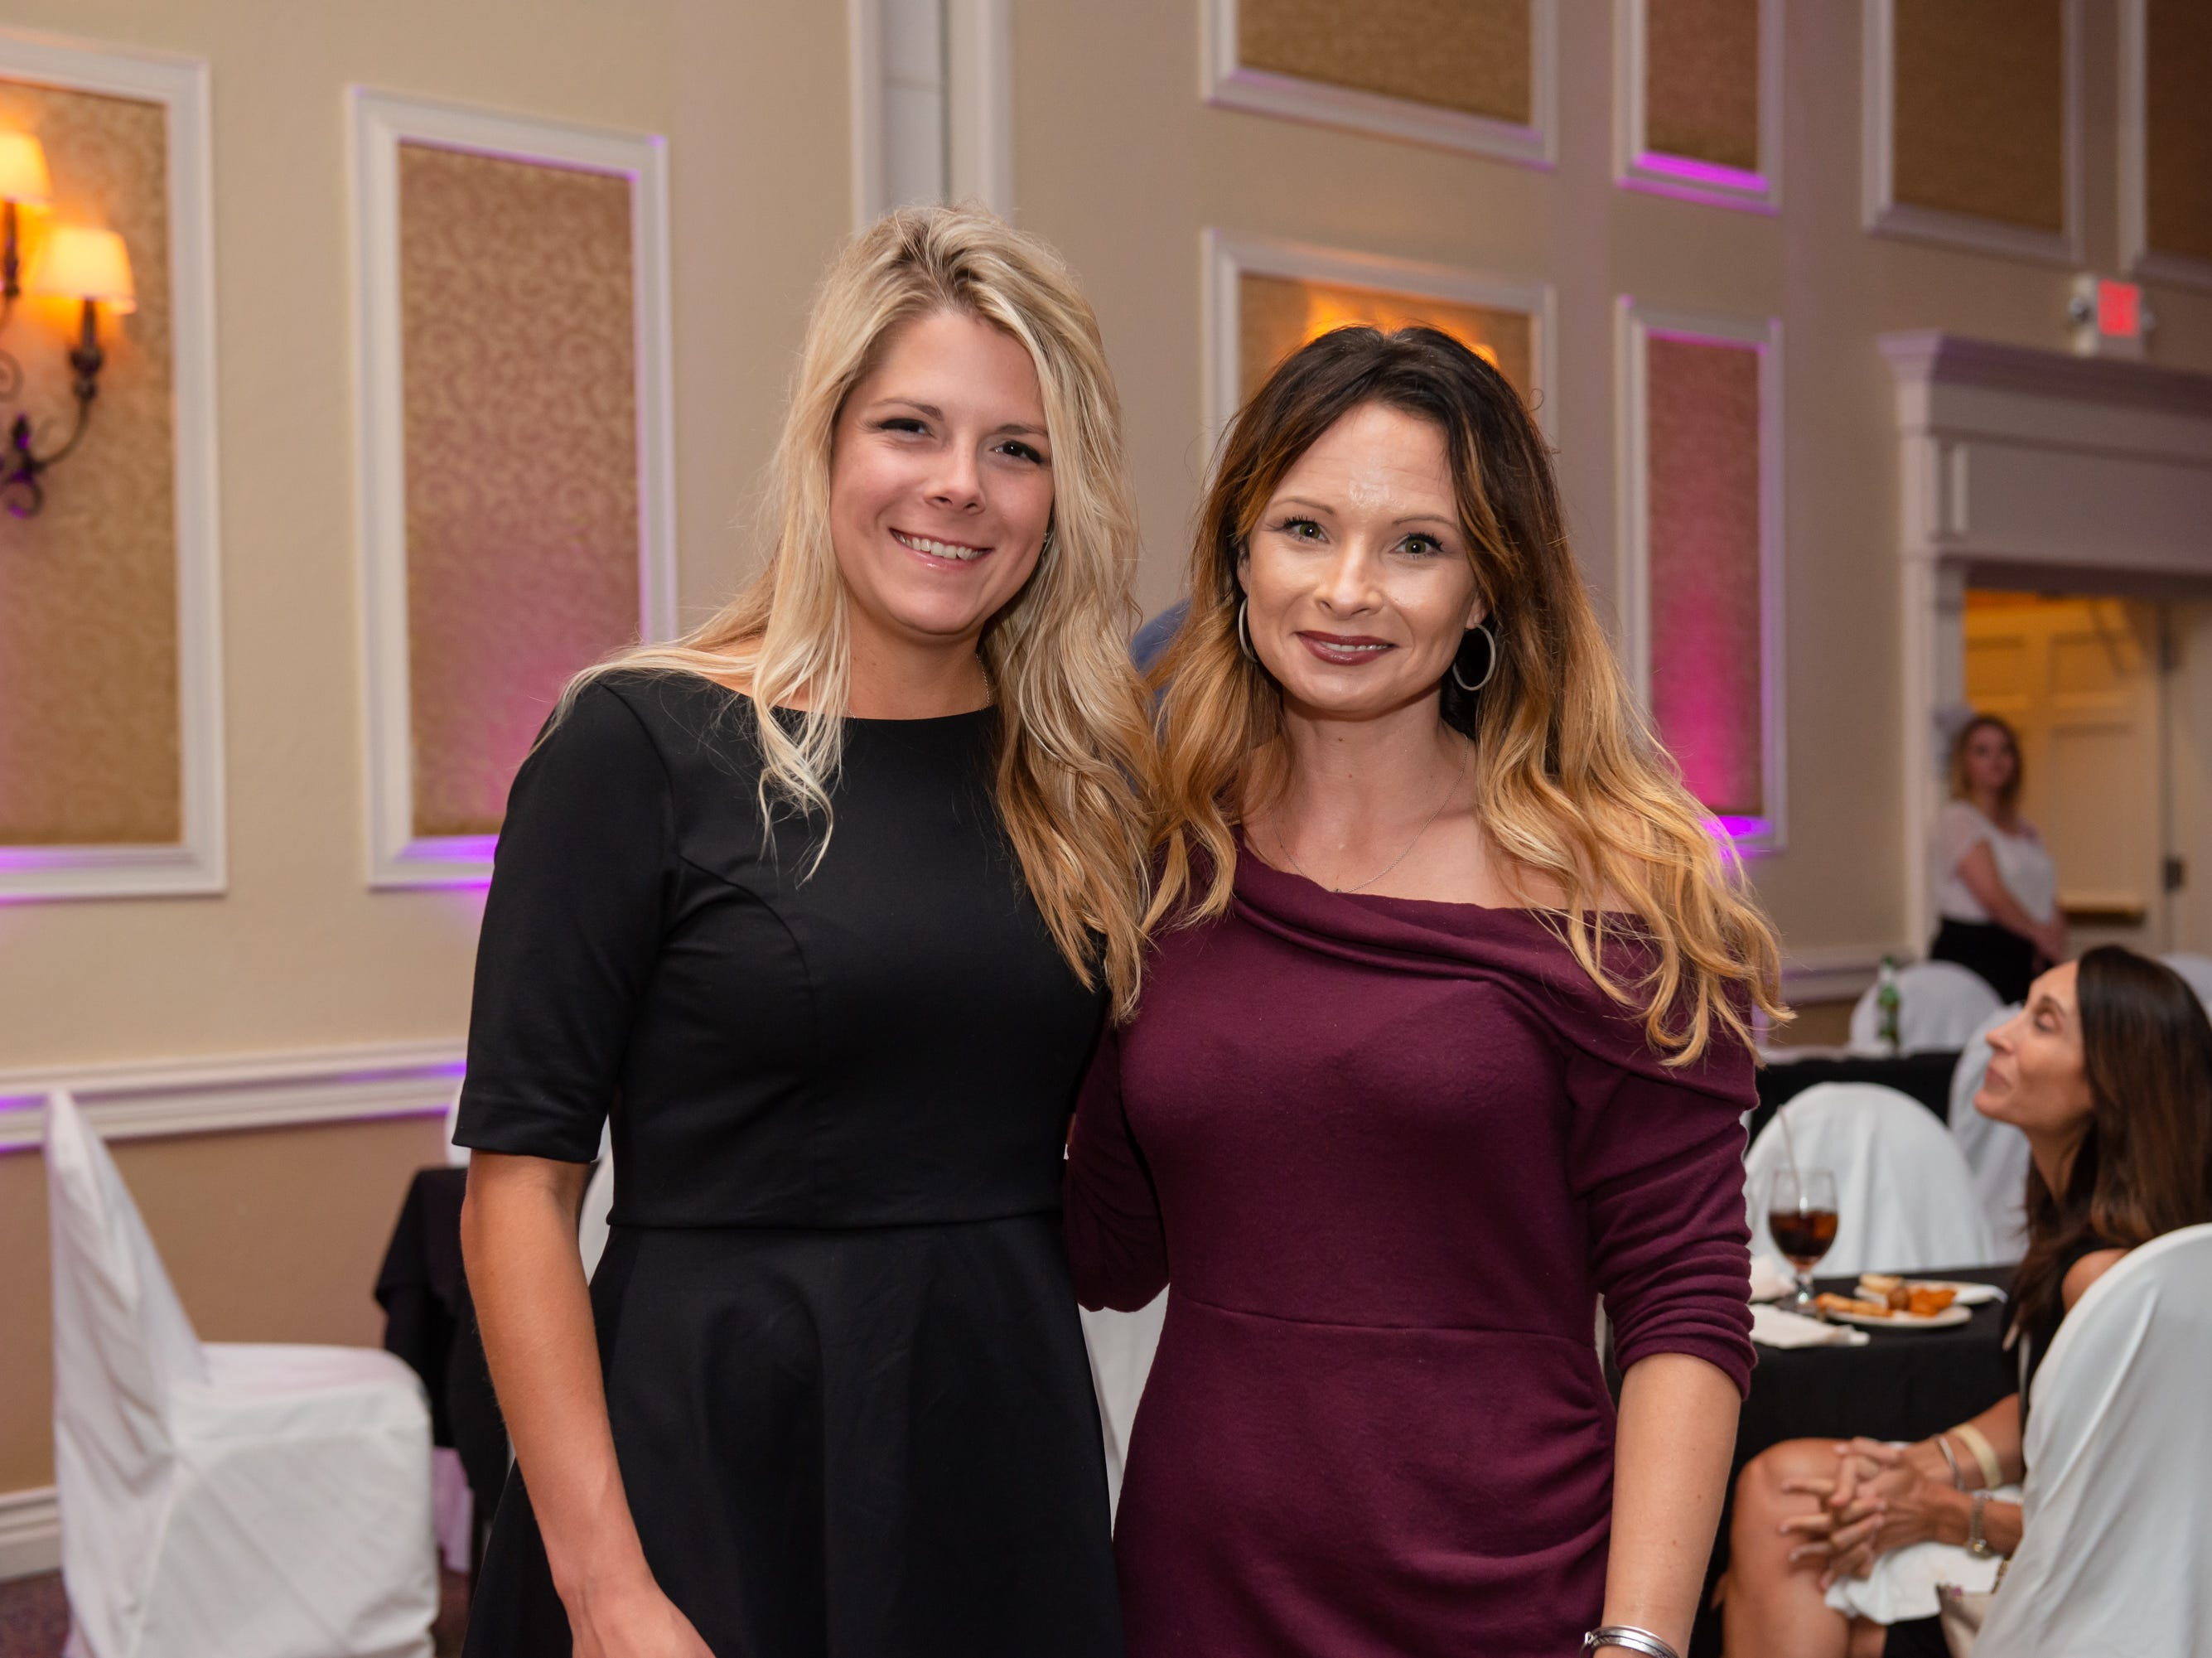 """Mallorie Ann Ingram and Bea Witmer at """"Dude Looks Like a Lady"""" event benefitting the Women's Center."""